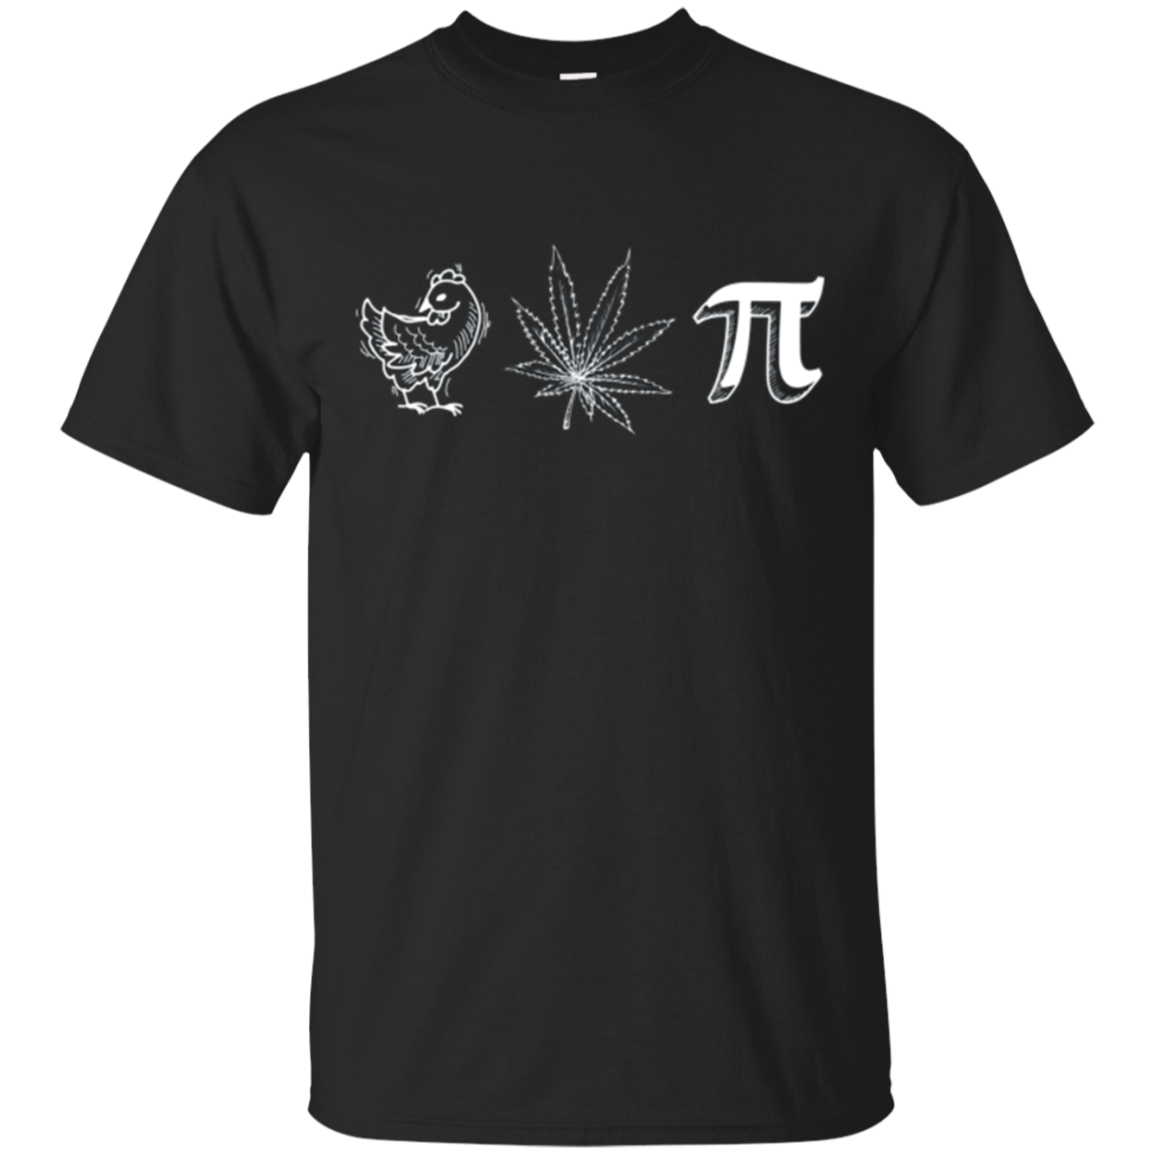 Chicken Pot Pie / Pi Funny Shirt for Geeks and Stoners